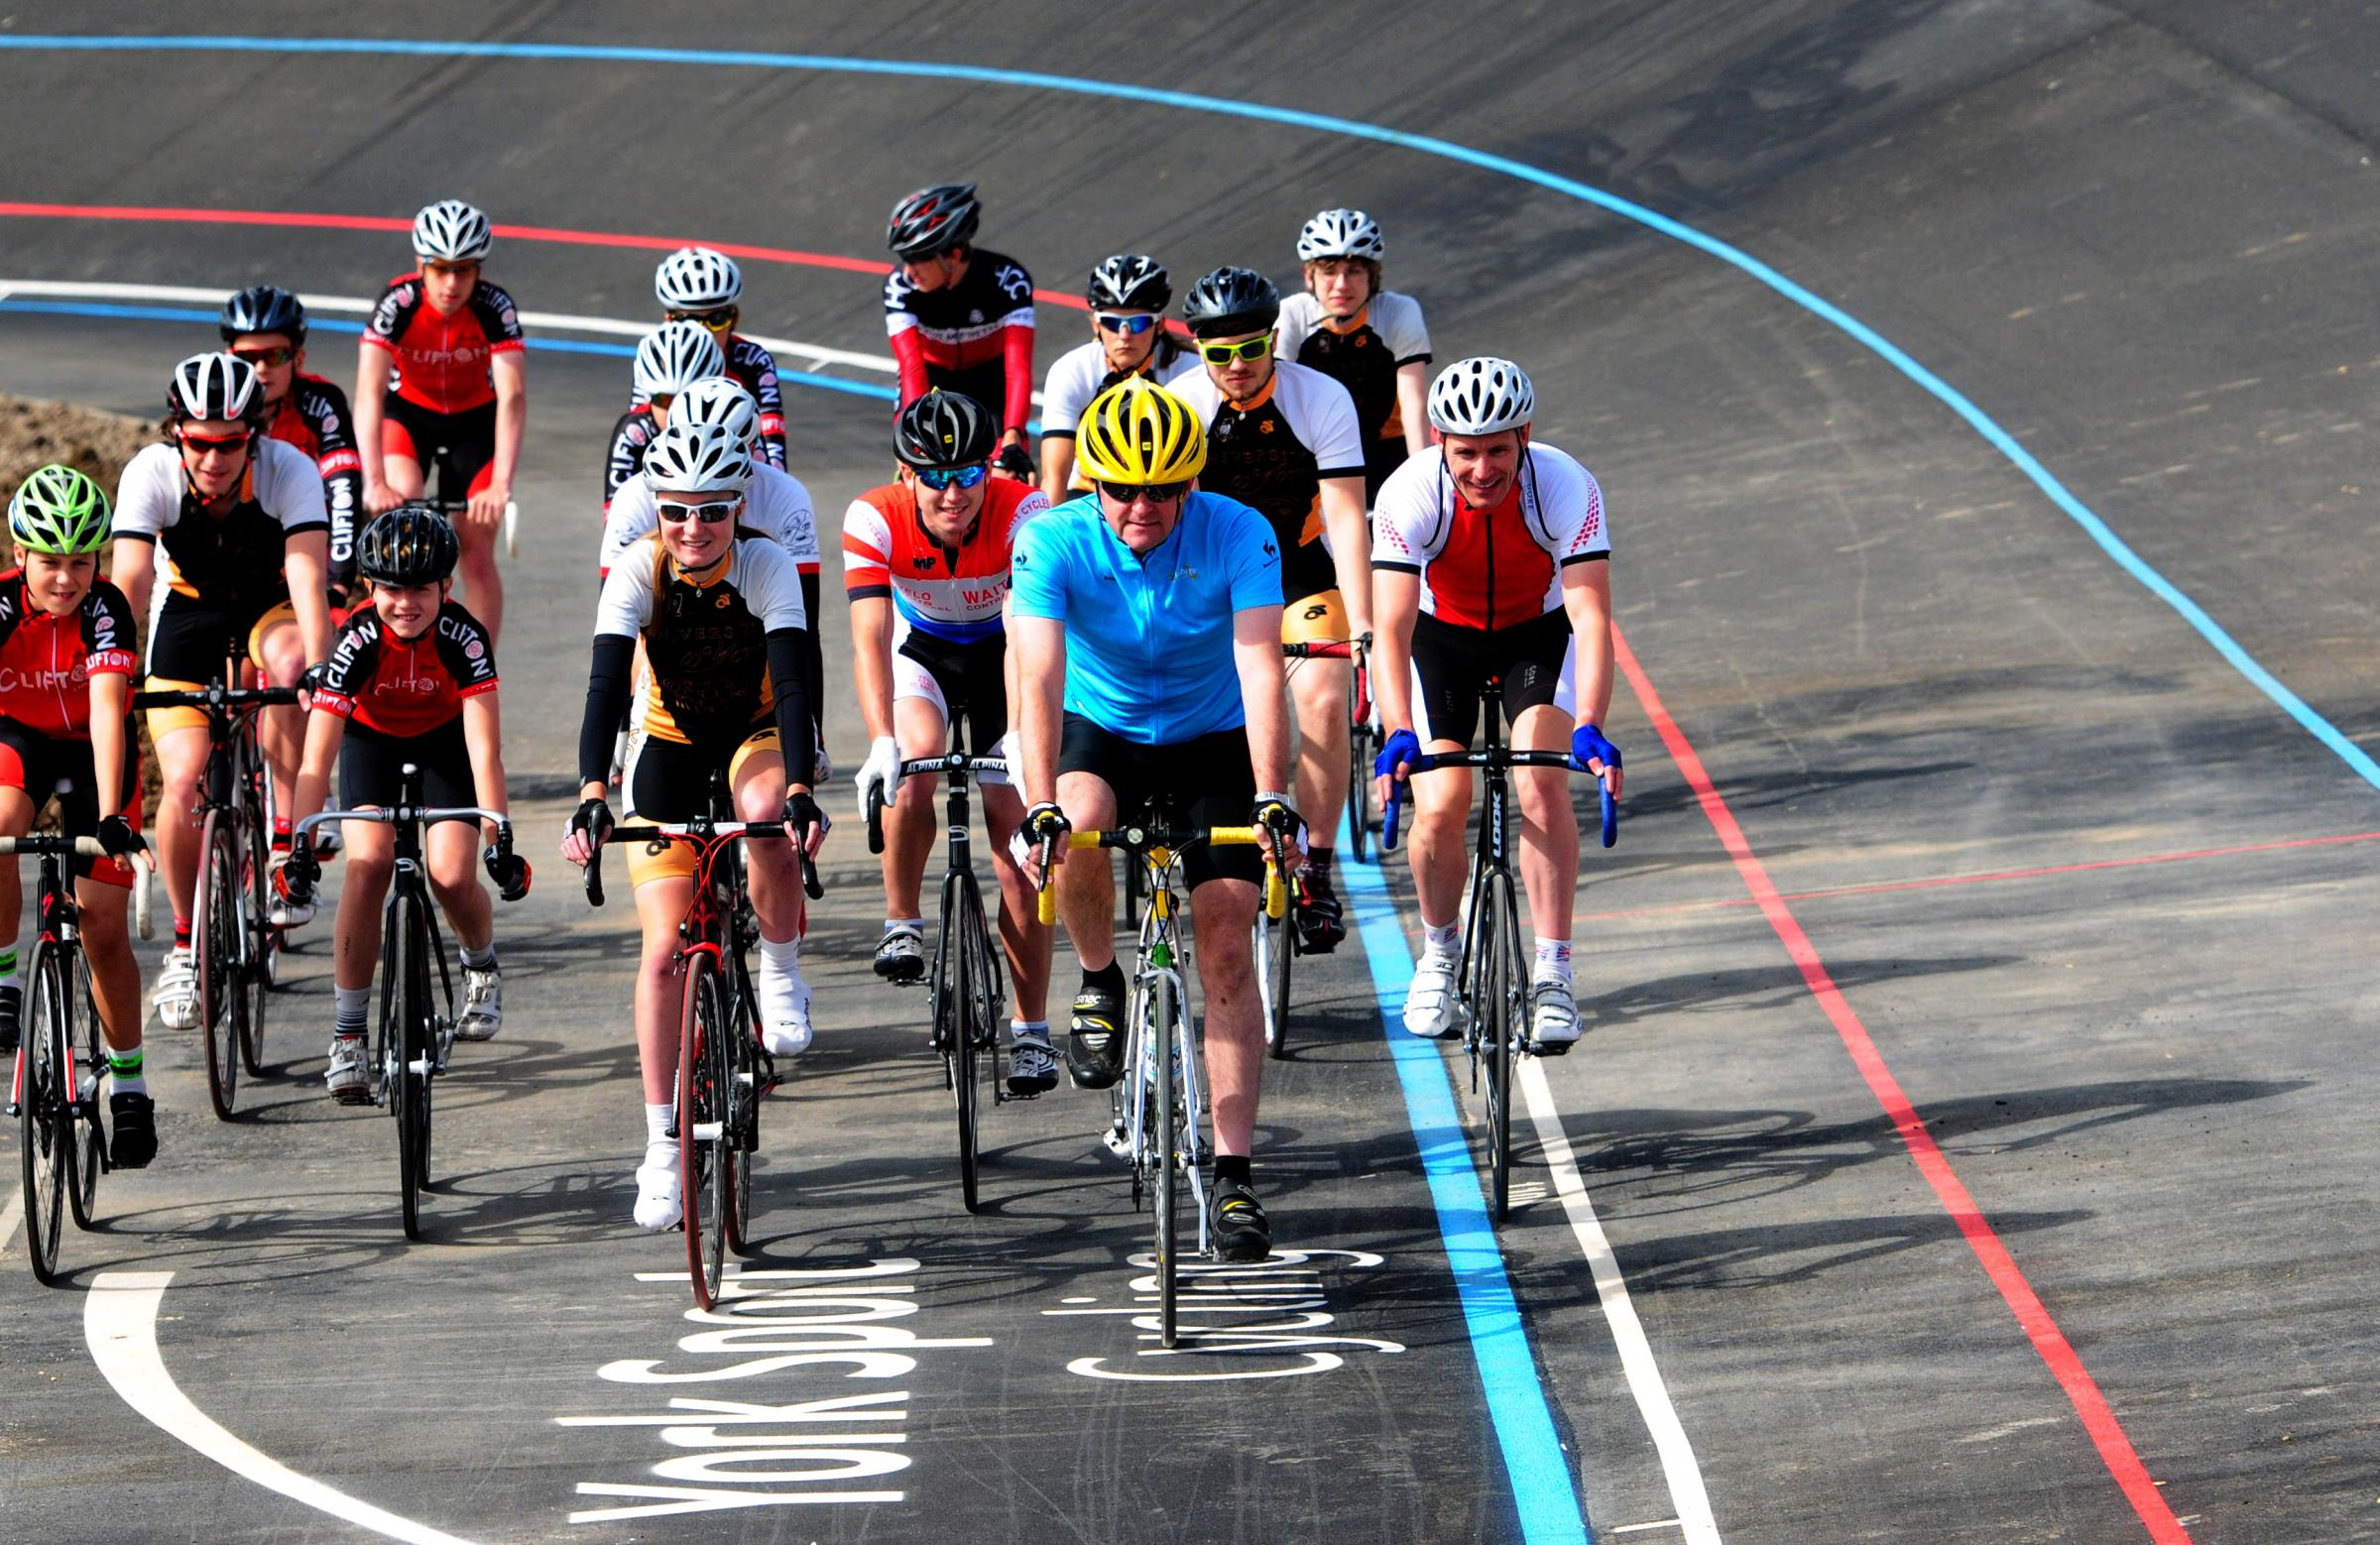 New outdoor cycling velodrome opening in York